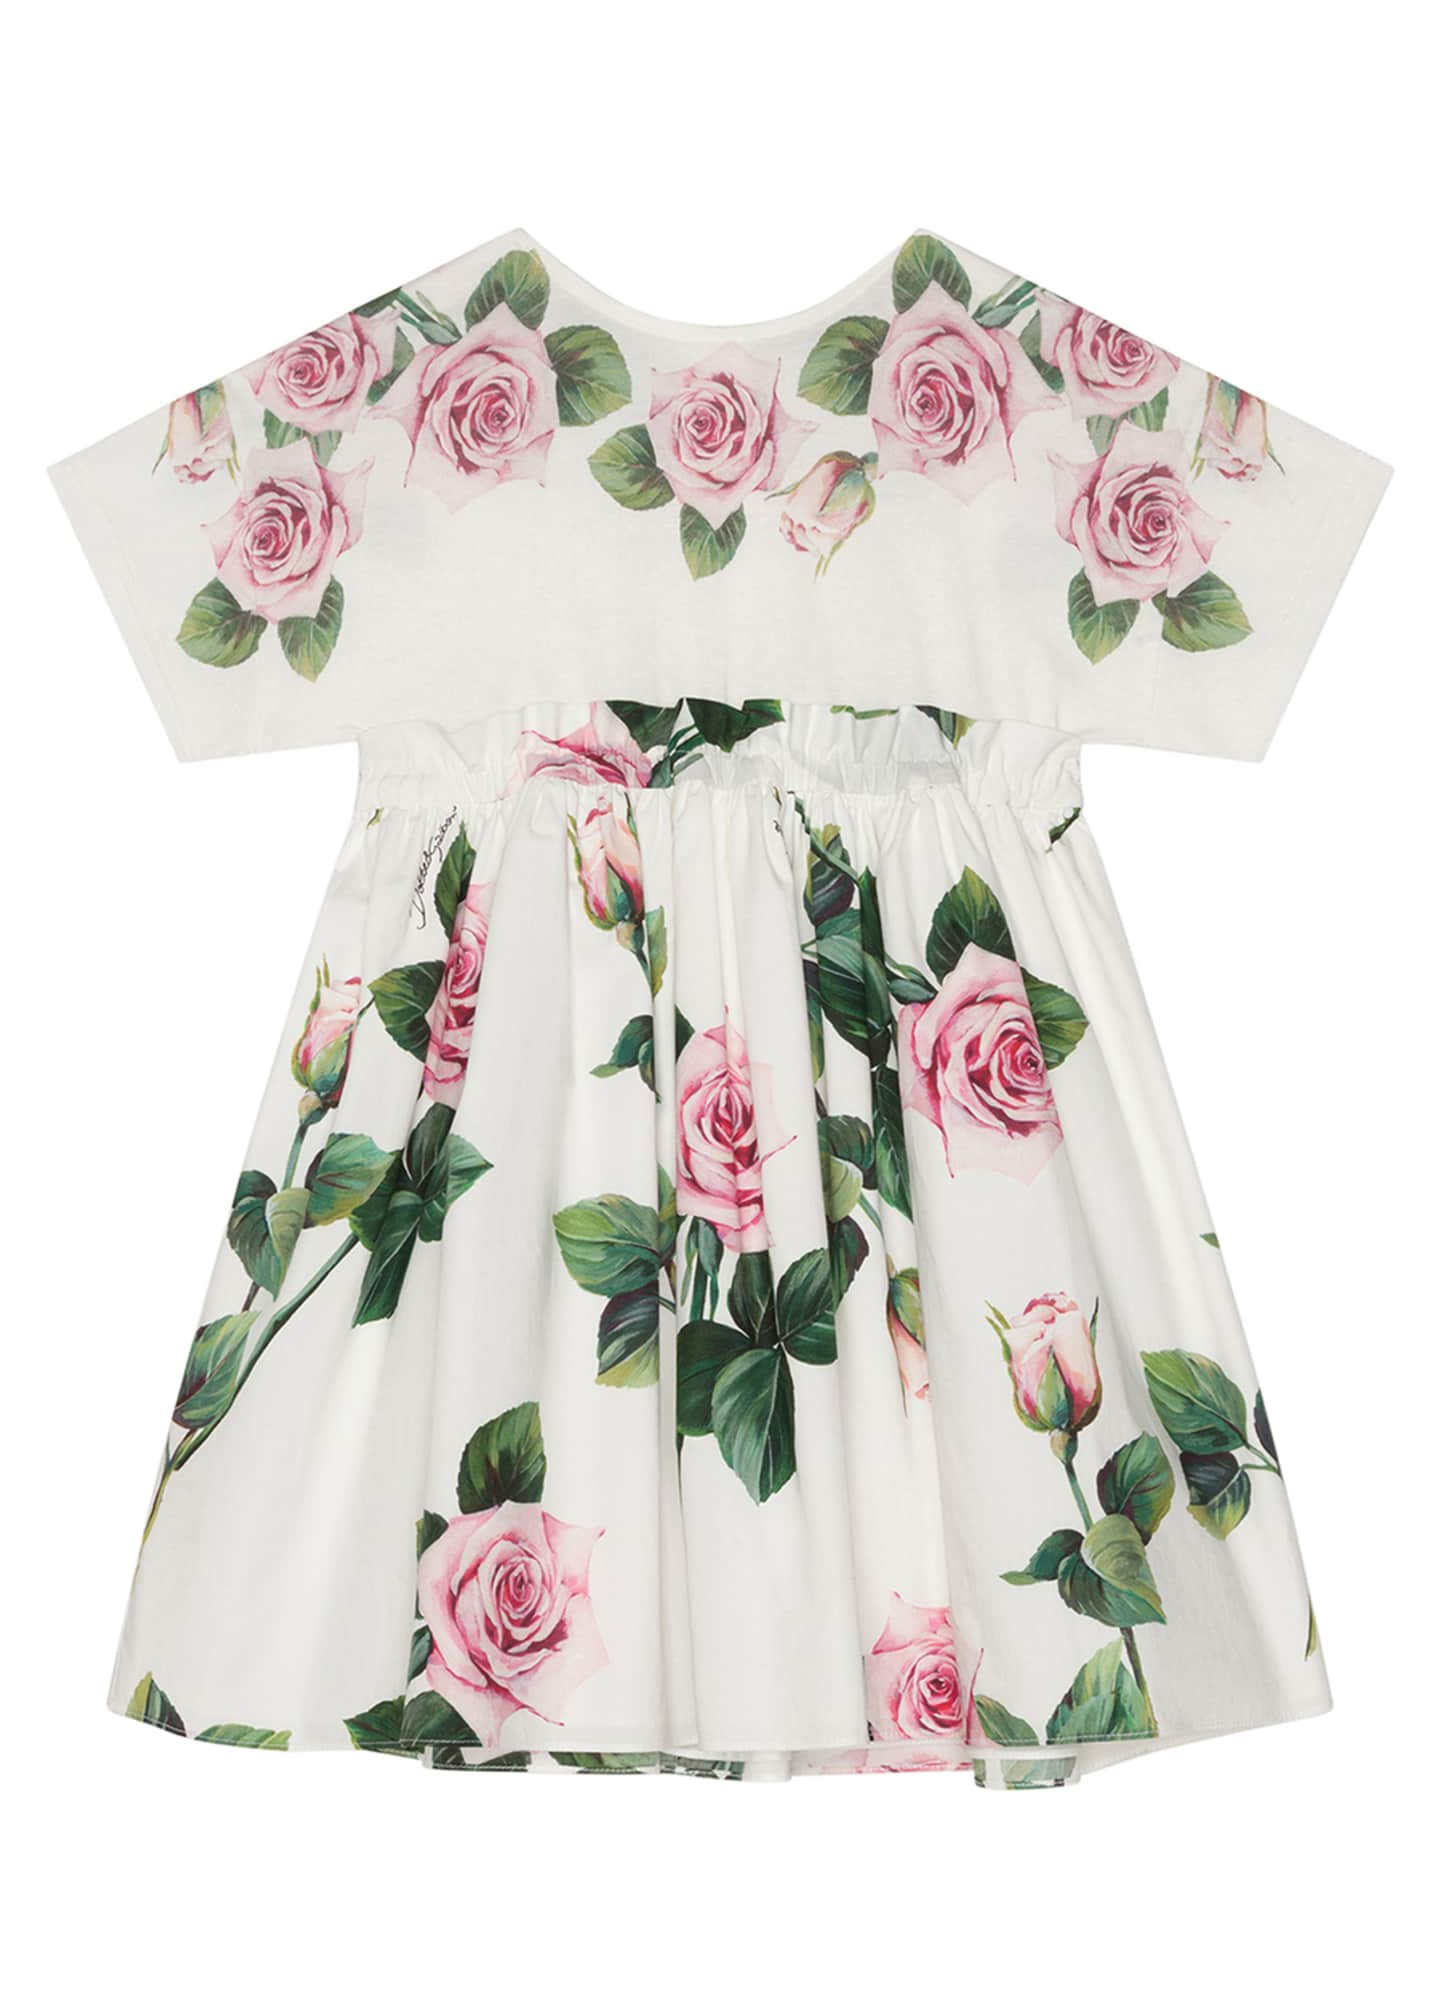 Image 1 of 2: Girl's Rose Print Combo Knit Top Dress, Size 8-12